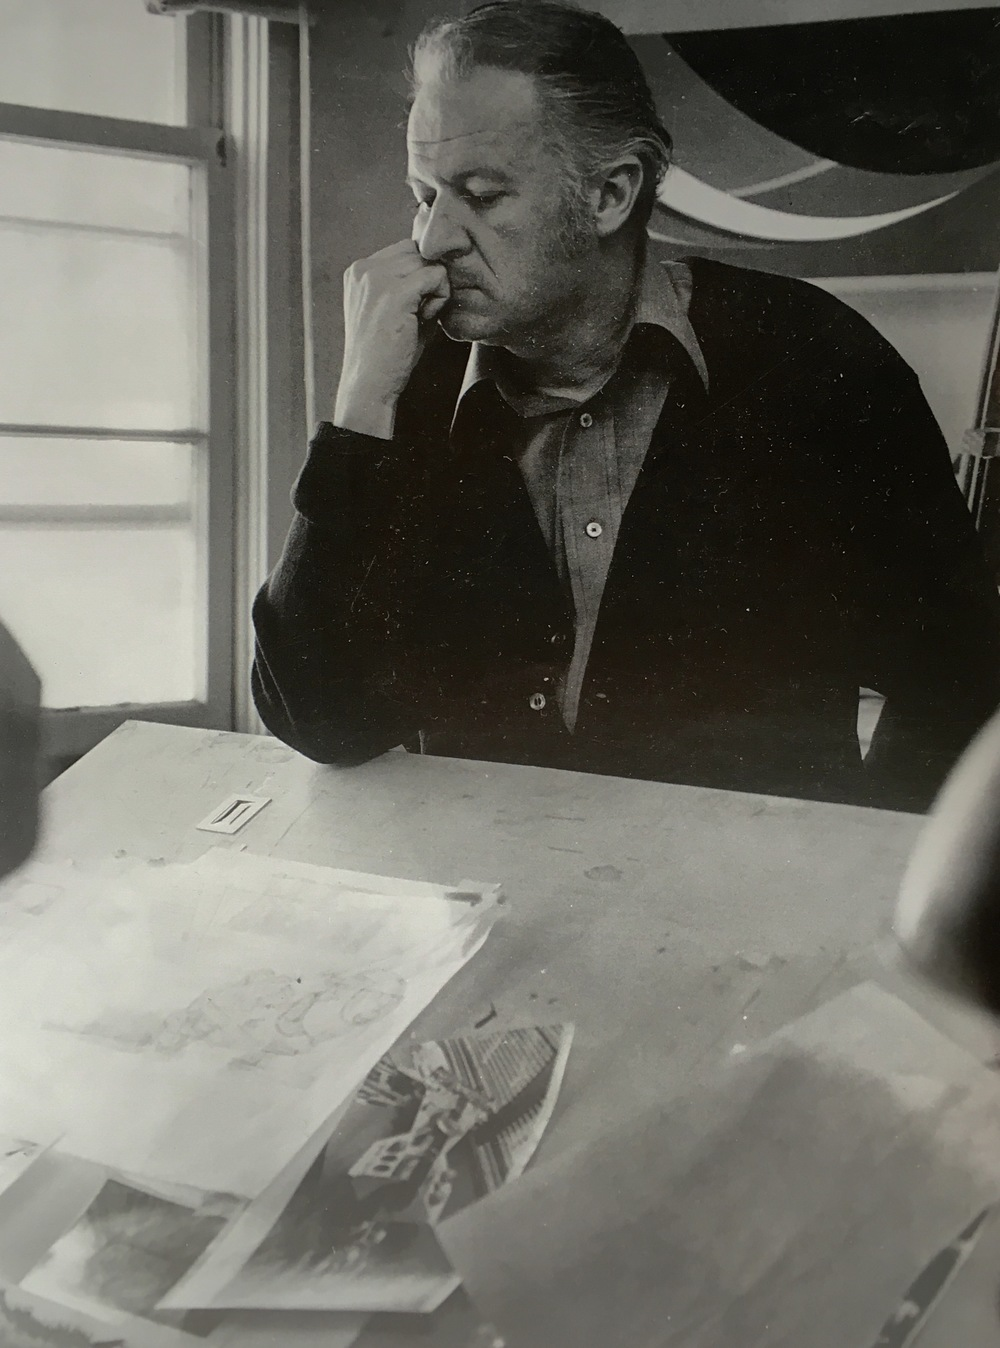 Ralph McQuarrie in his home studio, working on the pirate ship production painting (below), by Ed Summer.